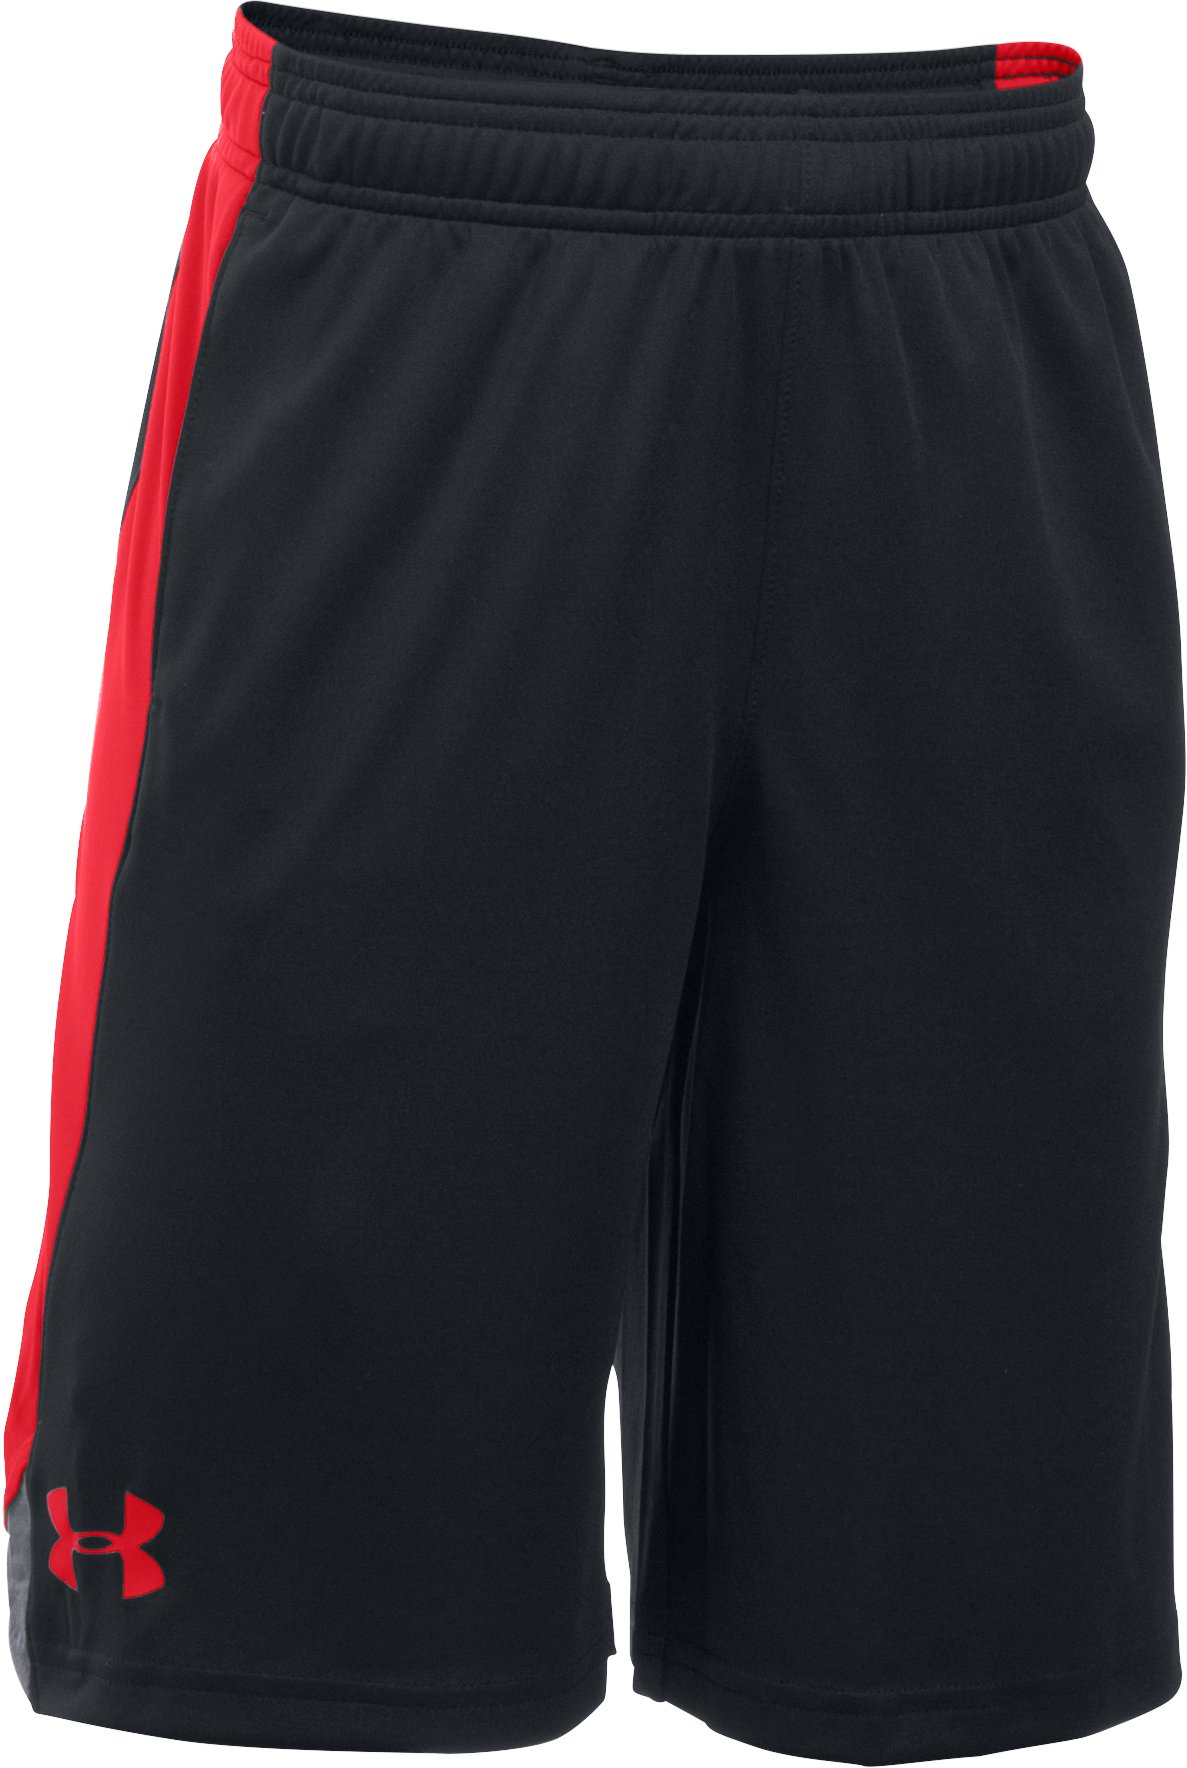 Boys' UA Eliminator Shorts, Black